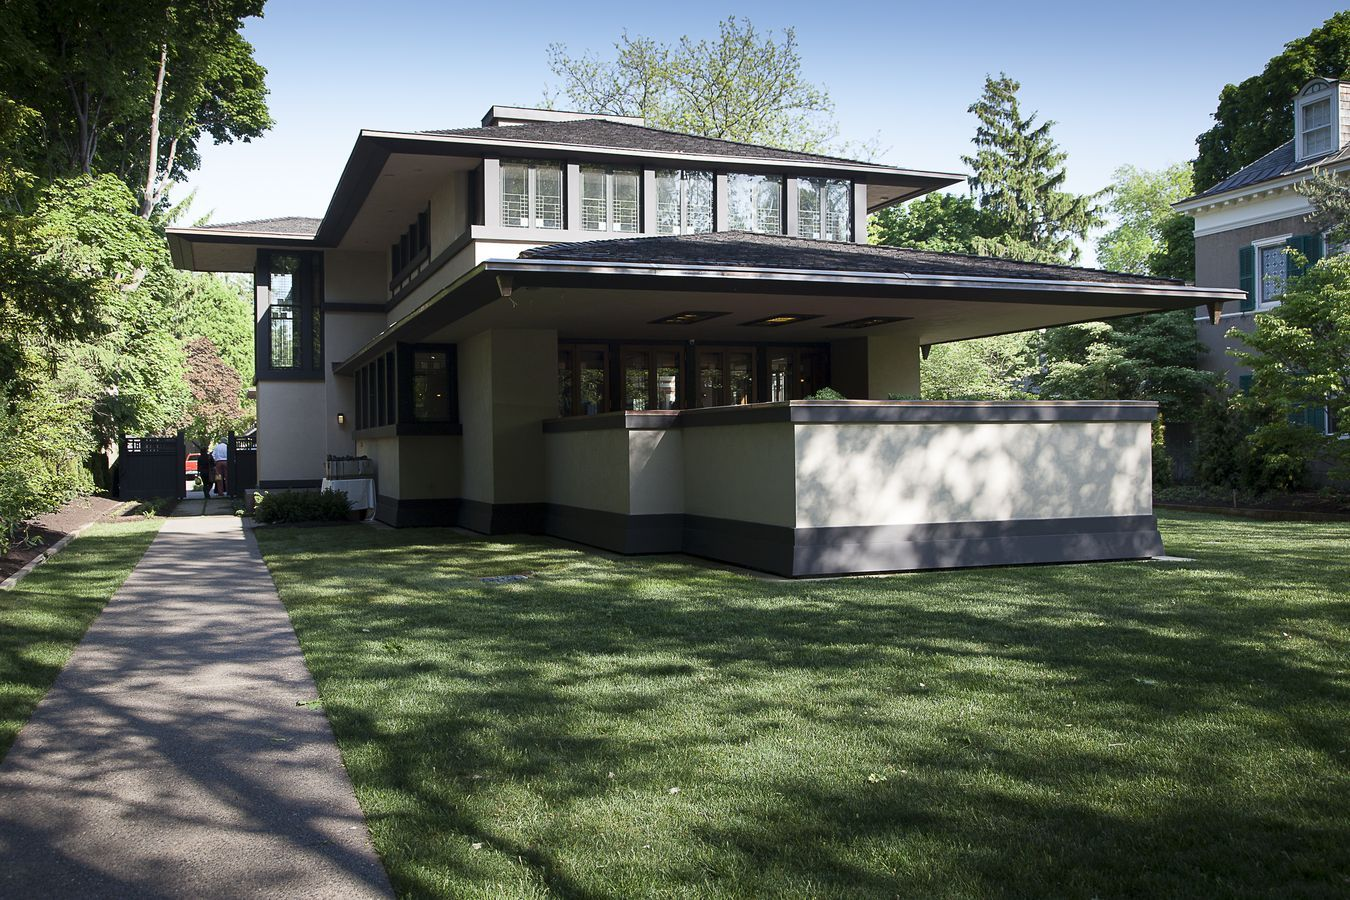 Superb Architecture The Boynton House A Frank Lloyd Designed Peacefully  Masterpiece Architecture Frank Lloyd Wright Home Designs Collections  Interior Design   ...